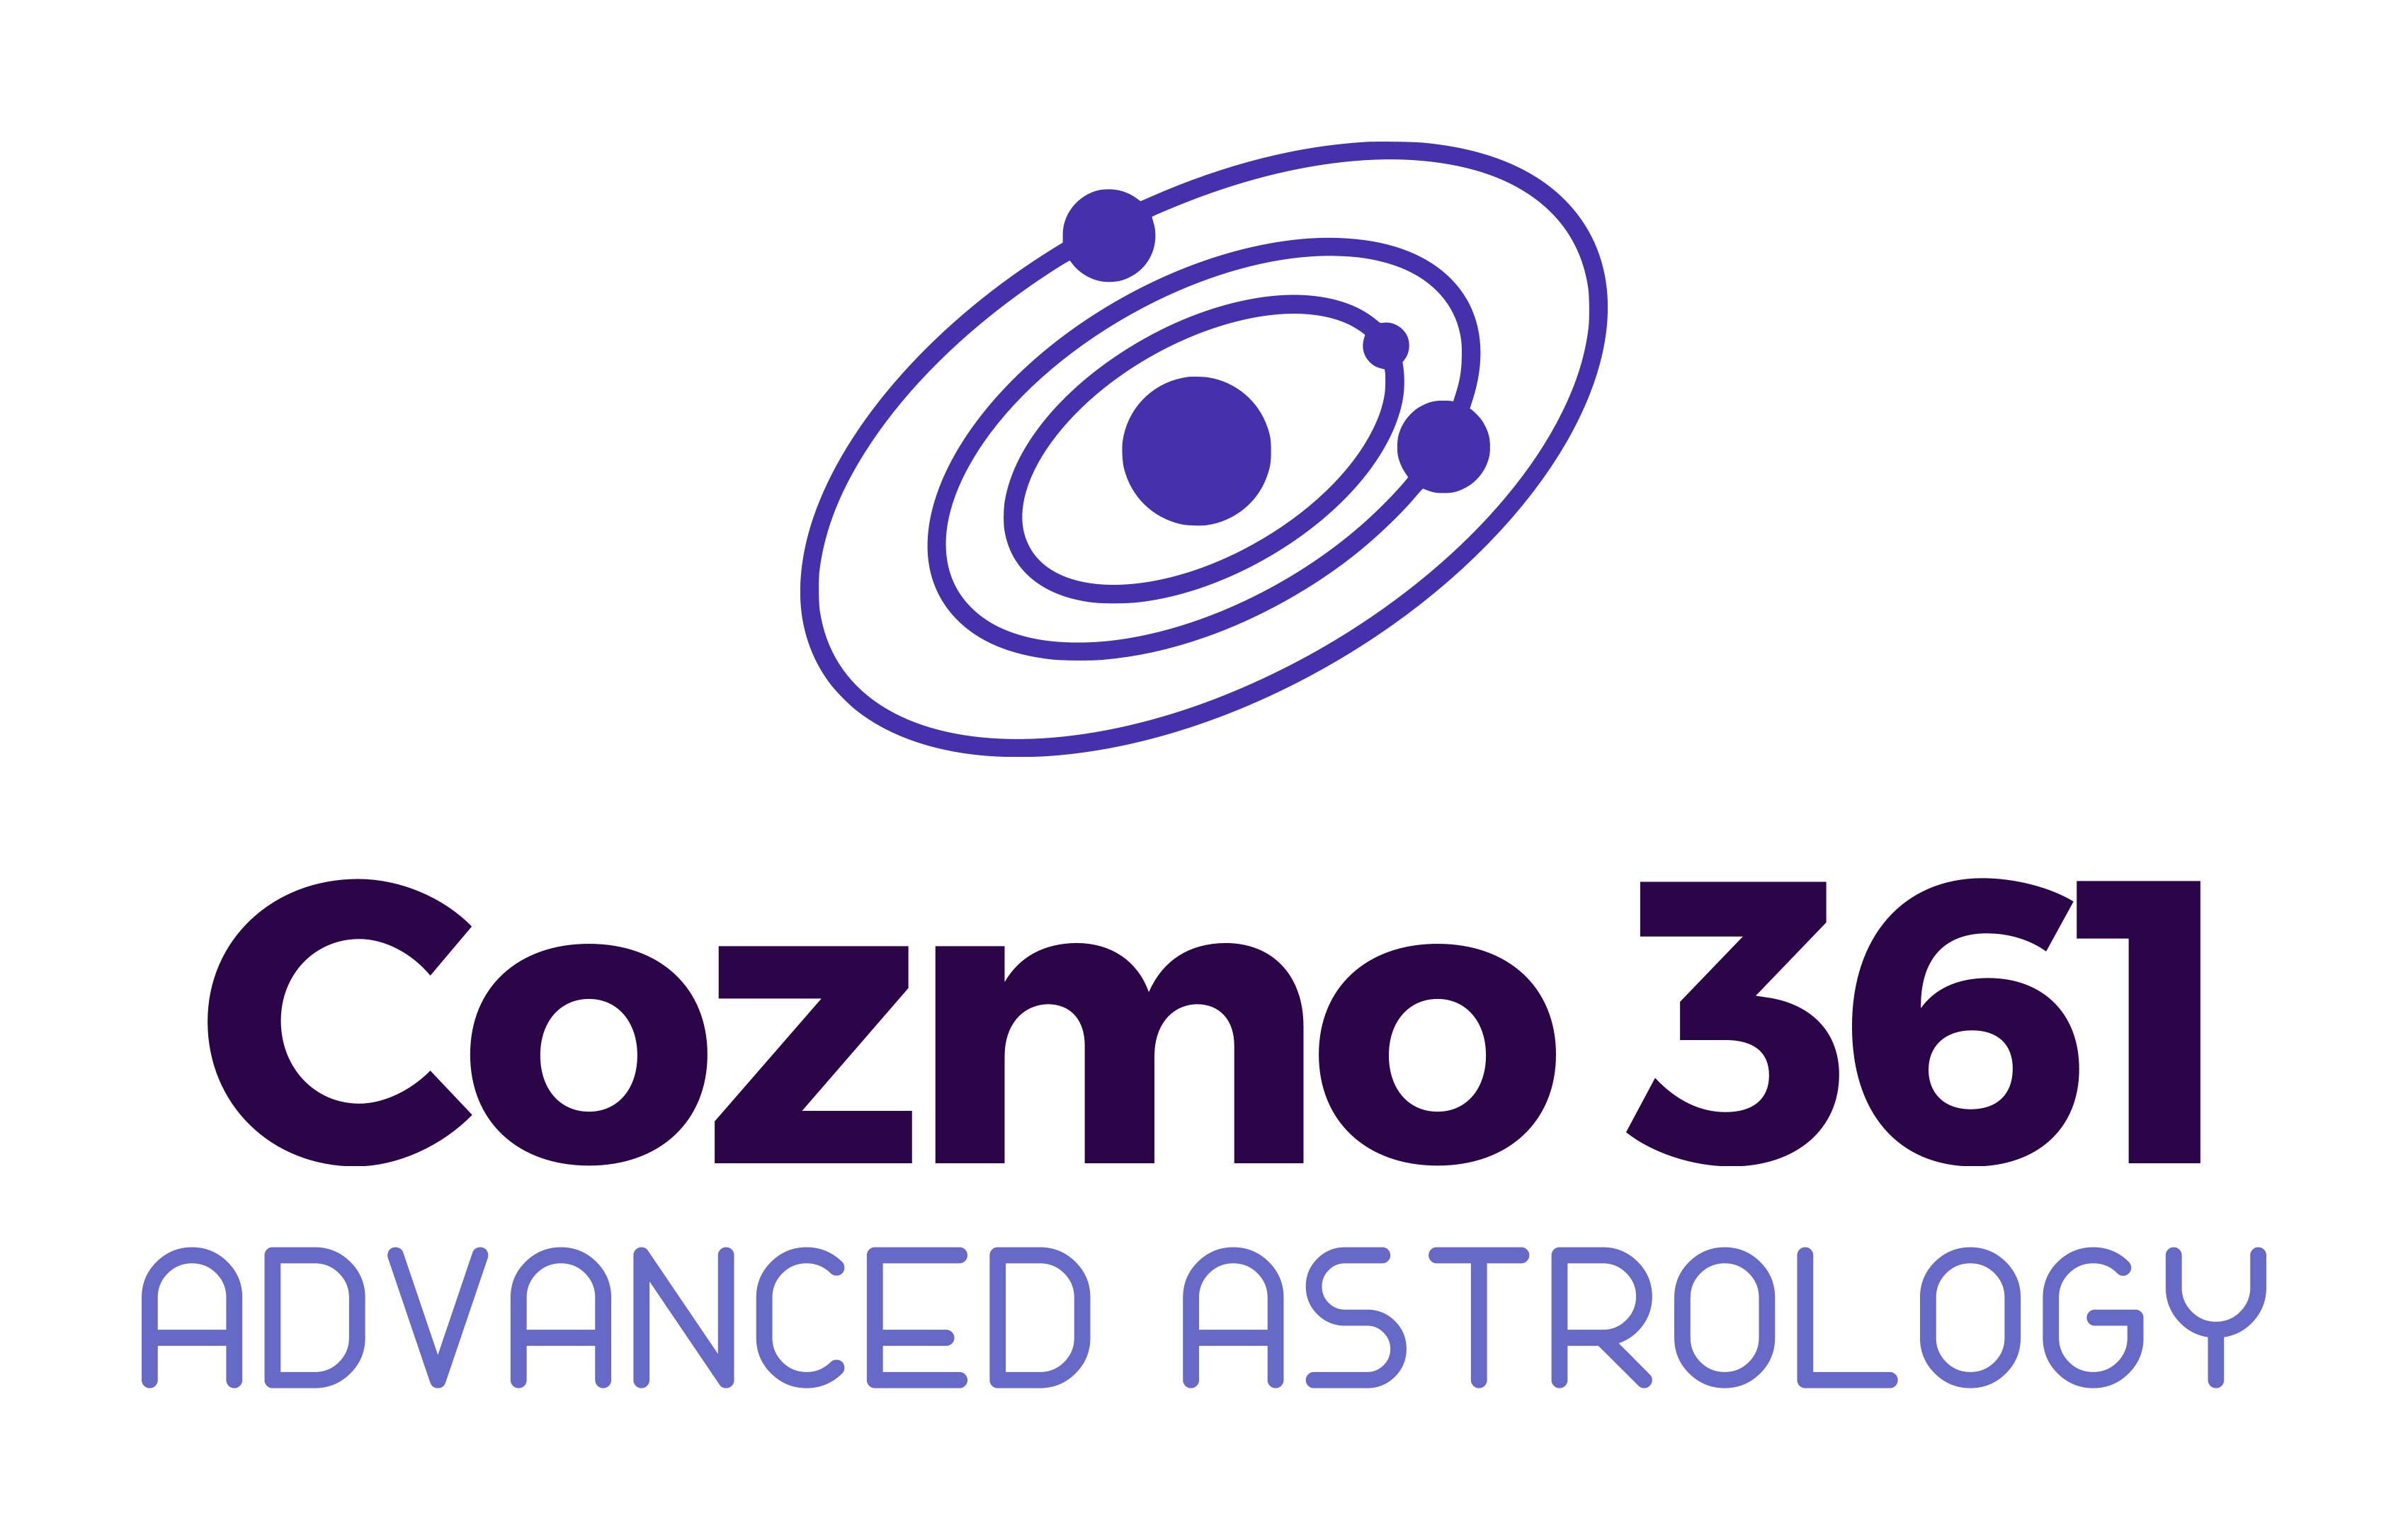 Cozmo361 - Advanced Astrology